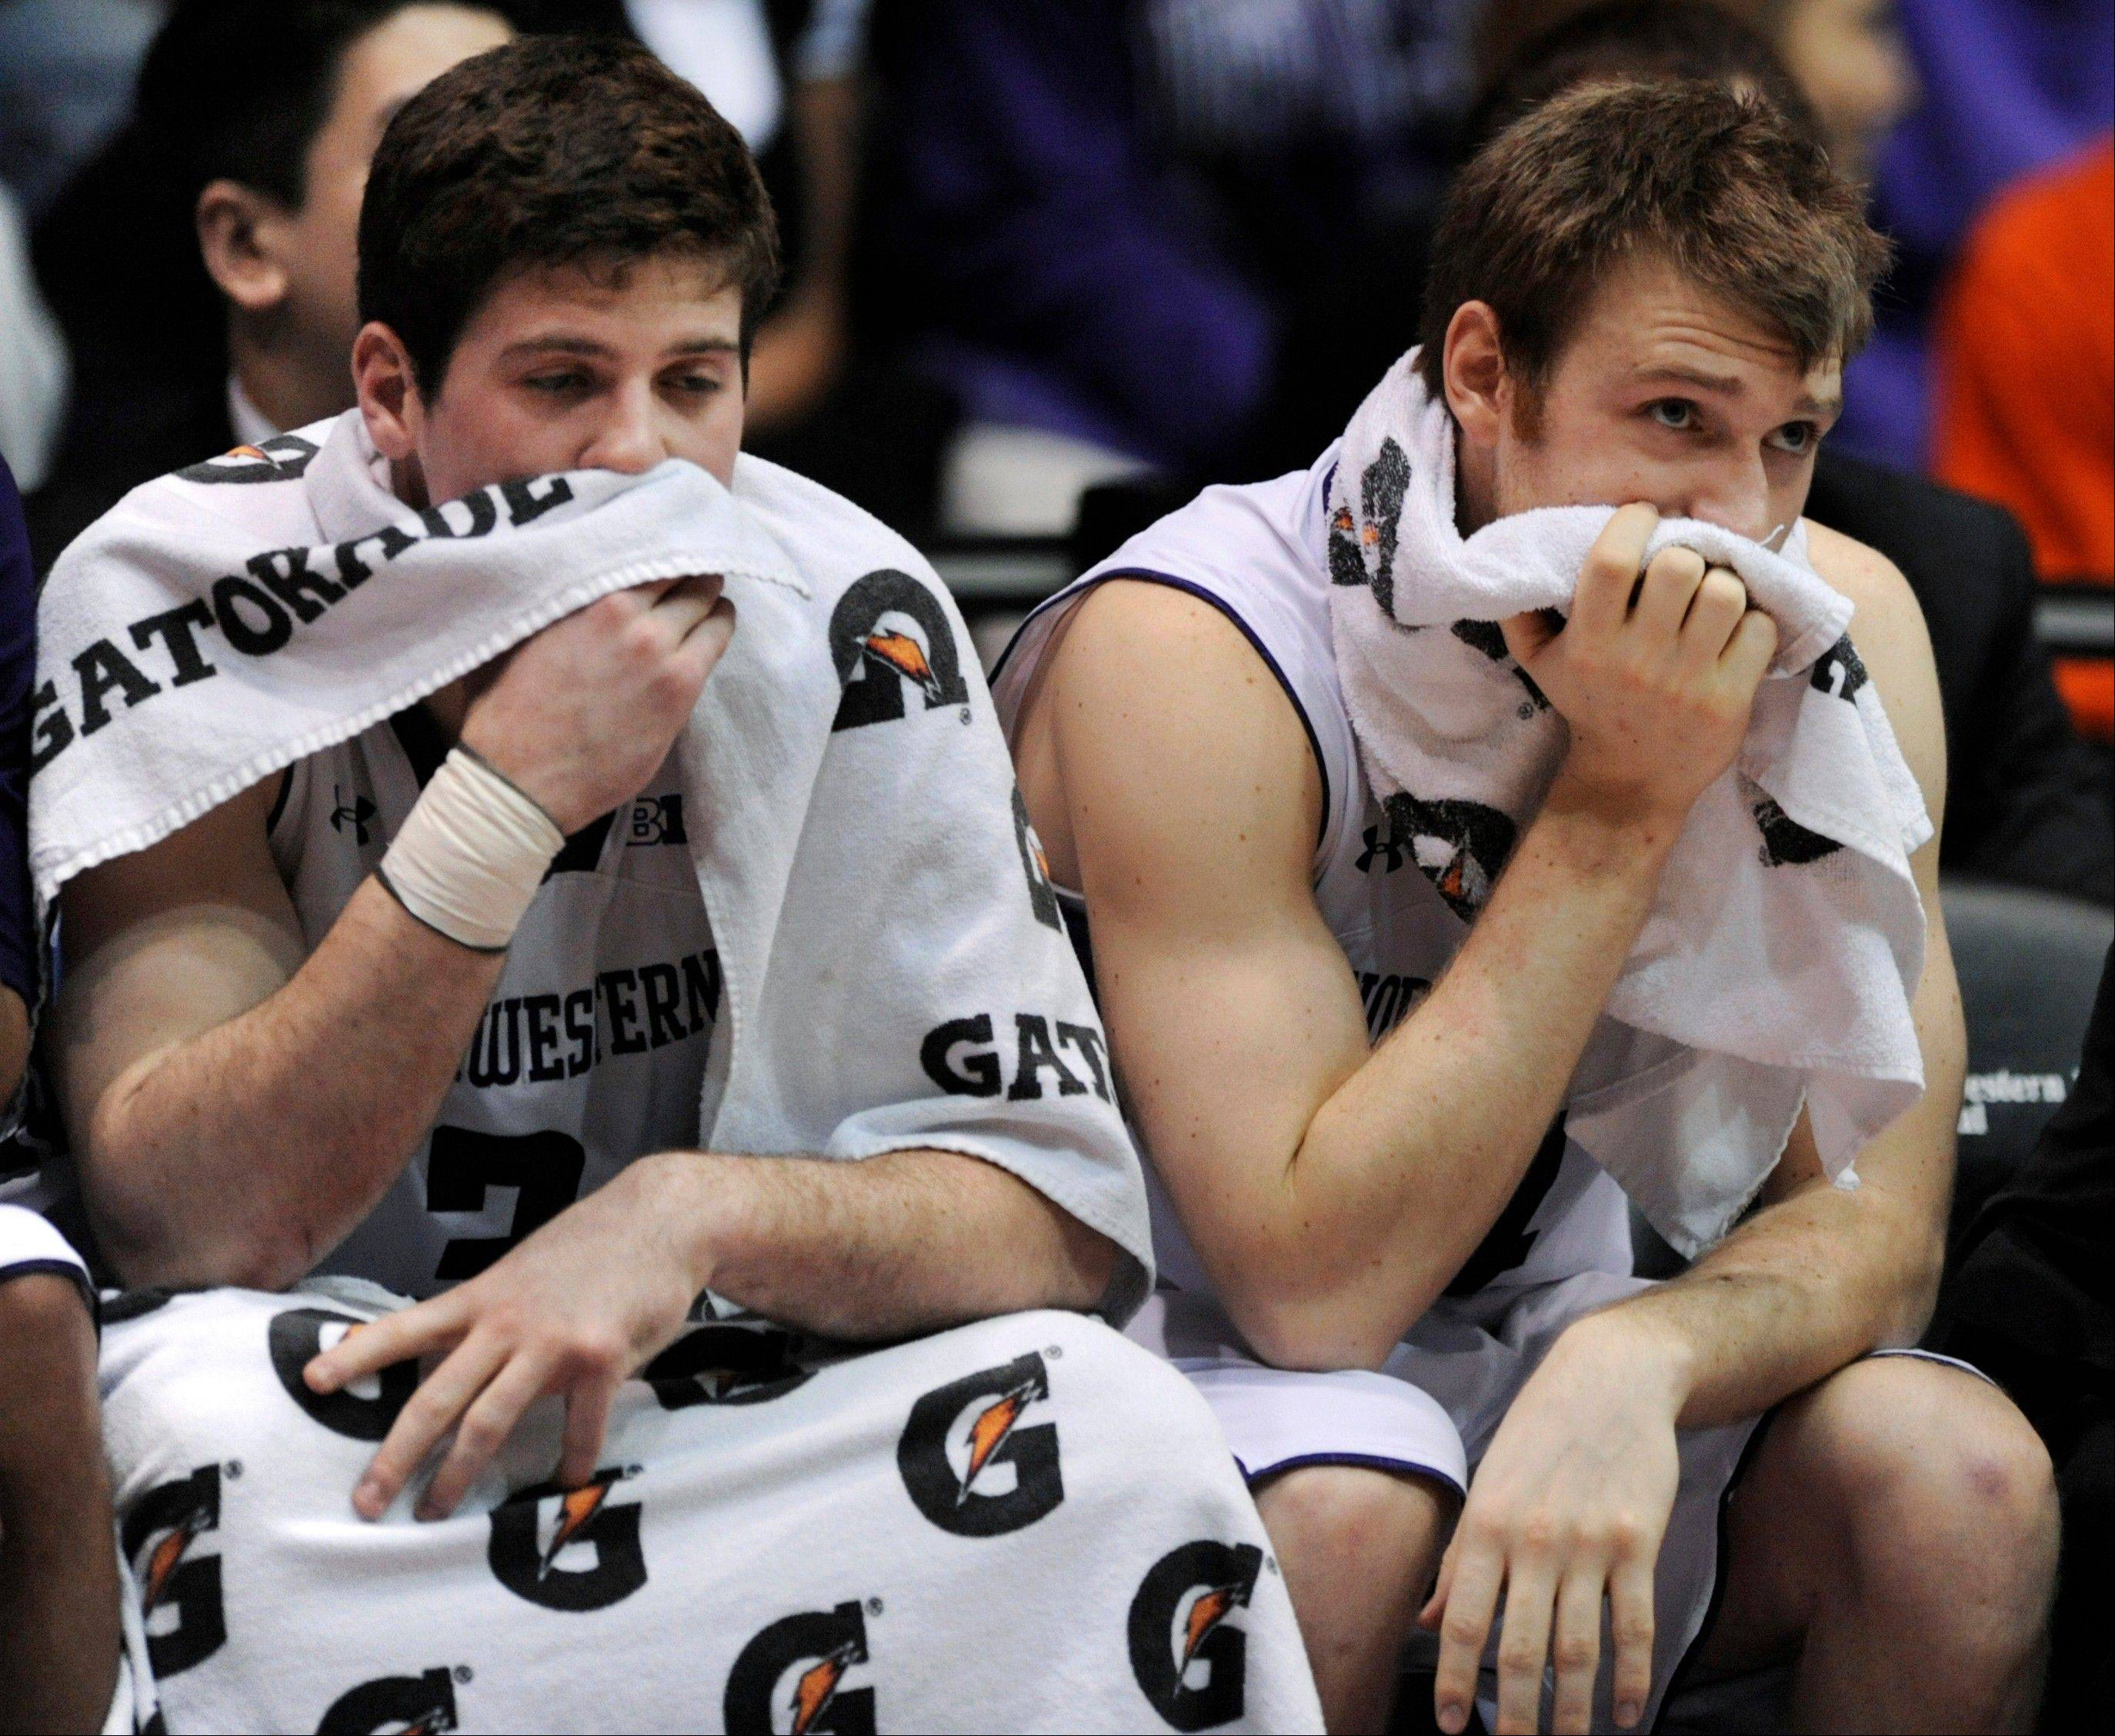 Northwestern's Dave Sobolewski left, and Alex Marcotullio sit on the bench during the second half against Illinois, Sunday. Illinois won 62-41.